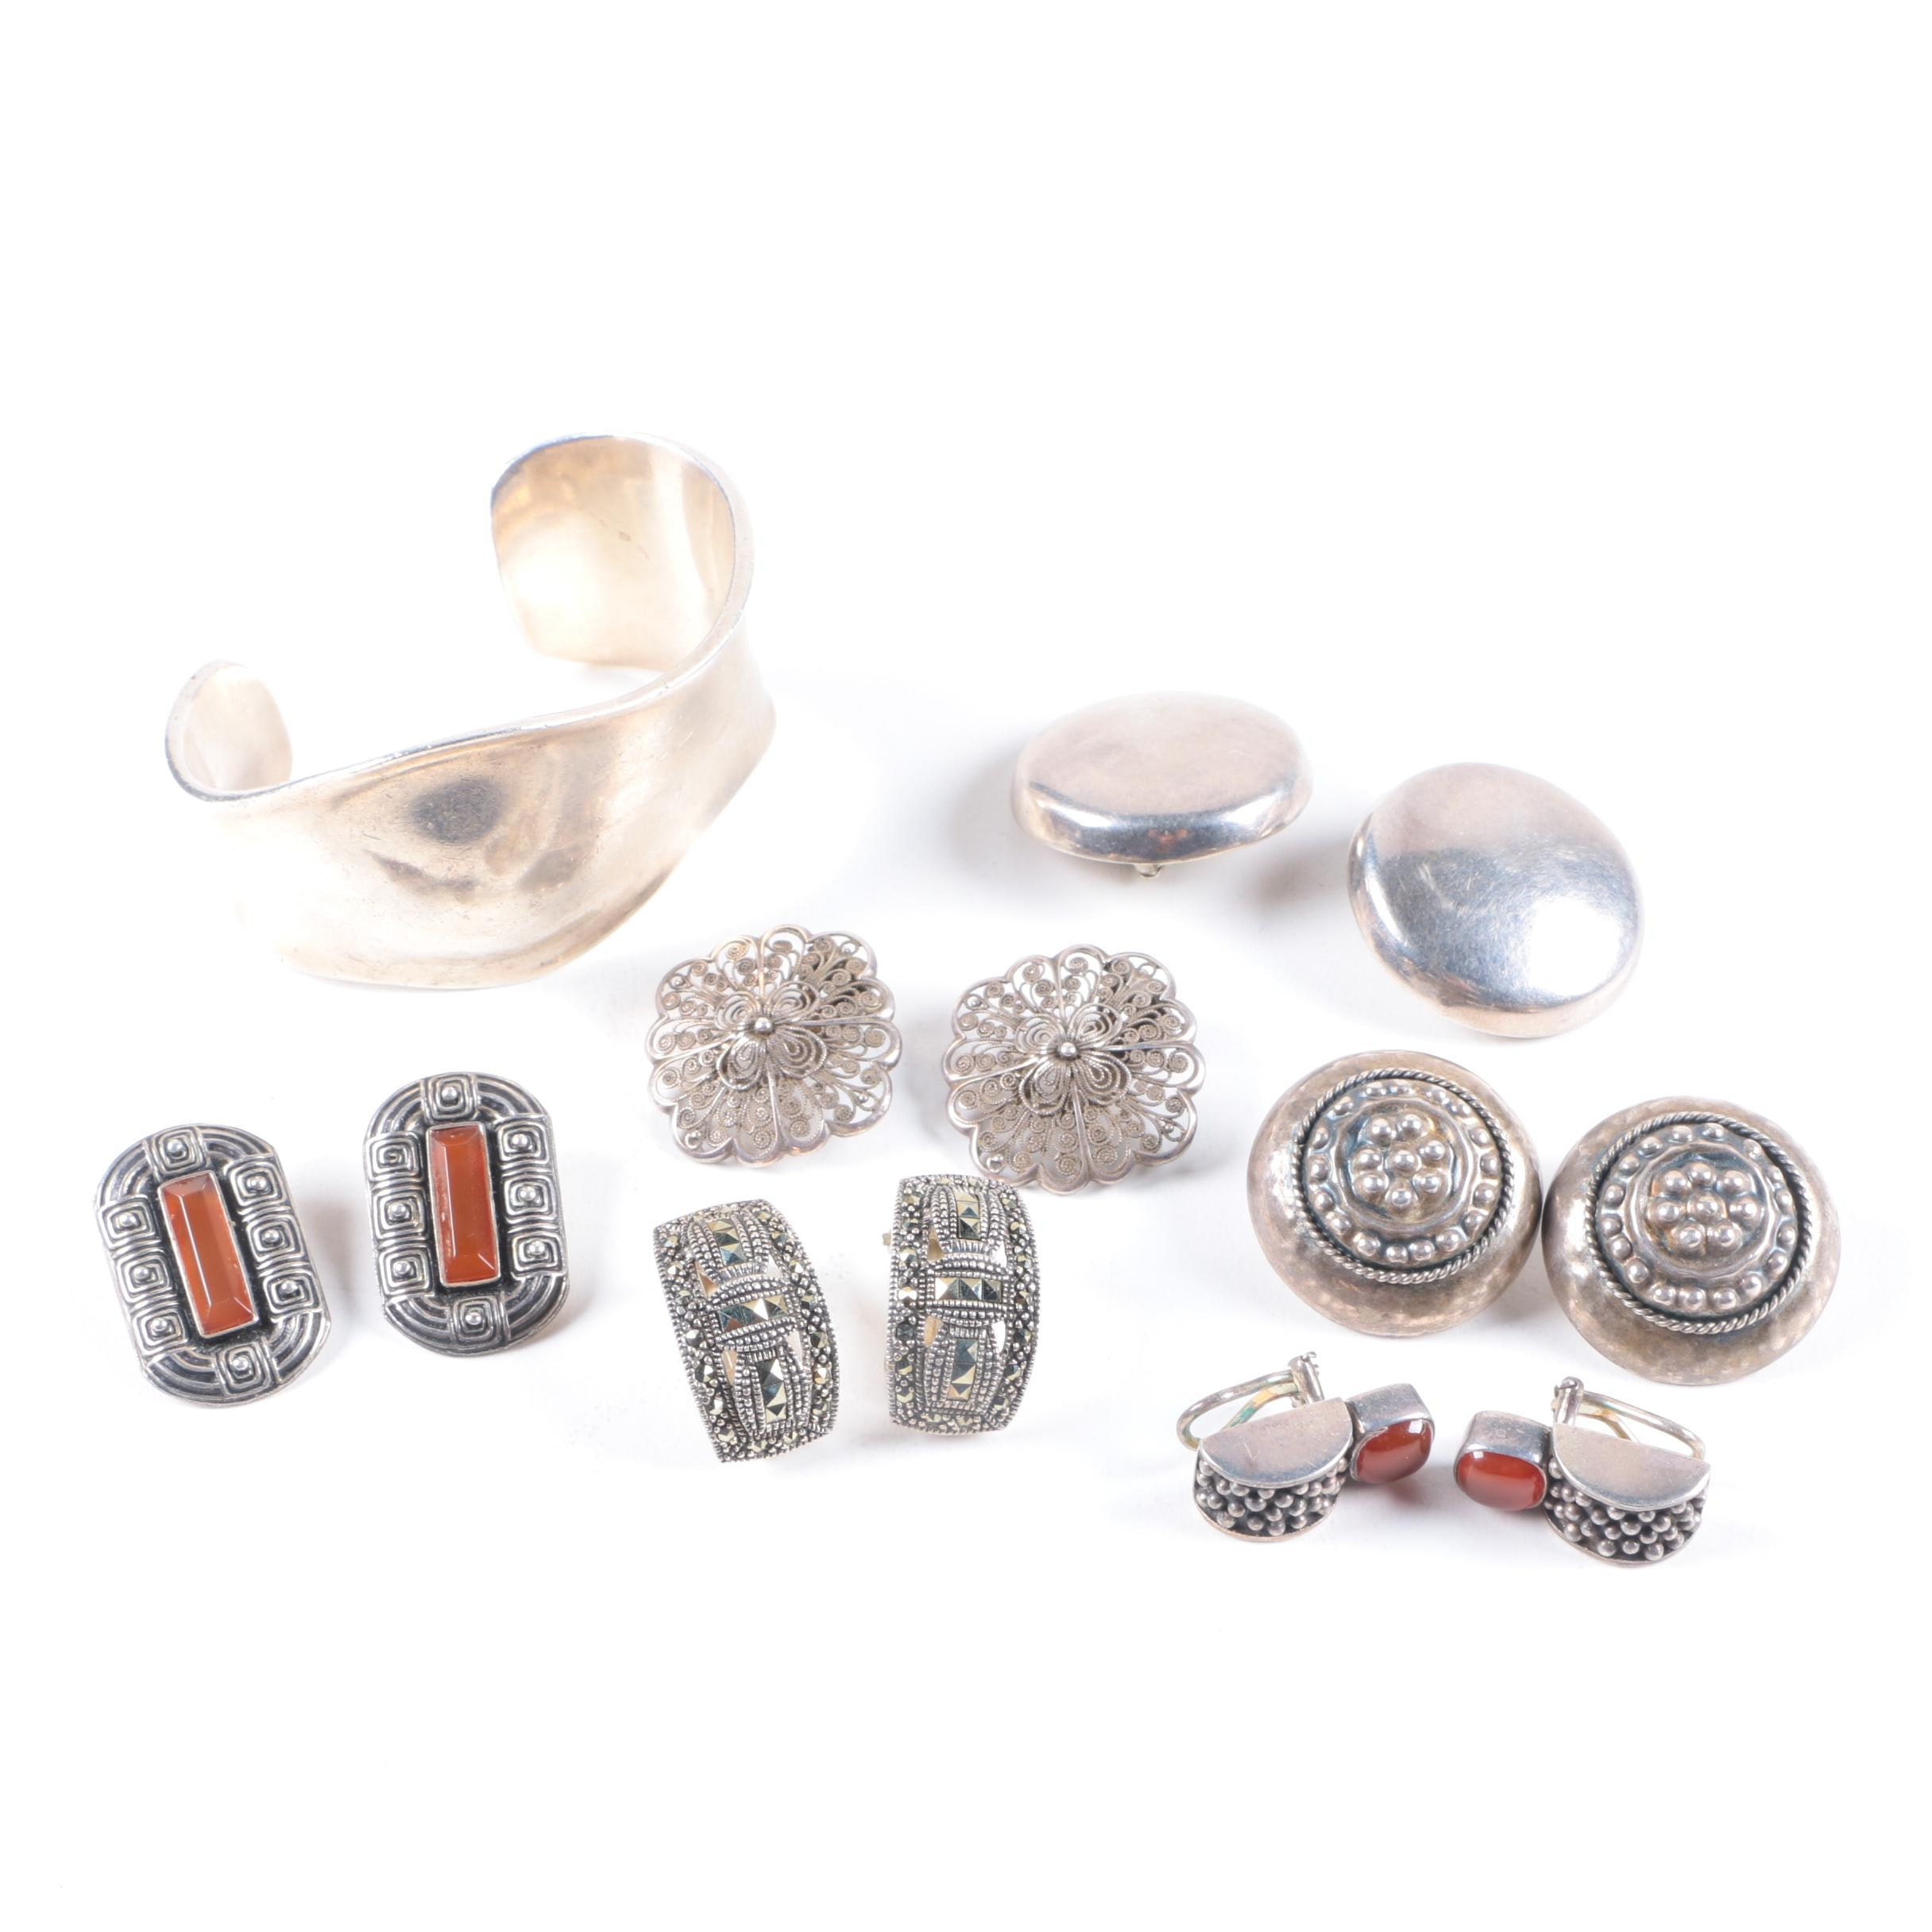 Assortment of Sterling Silver Clip-On Earrings and Cuff